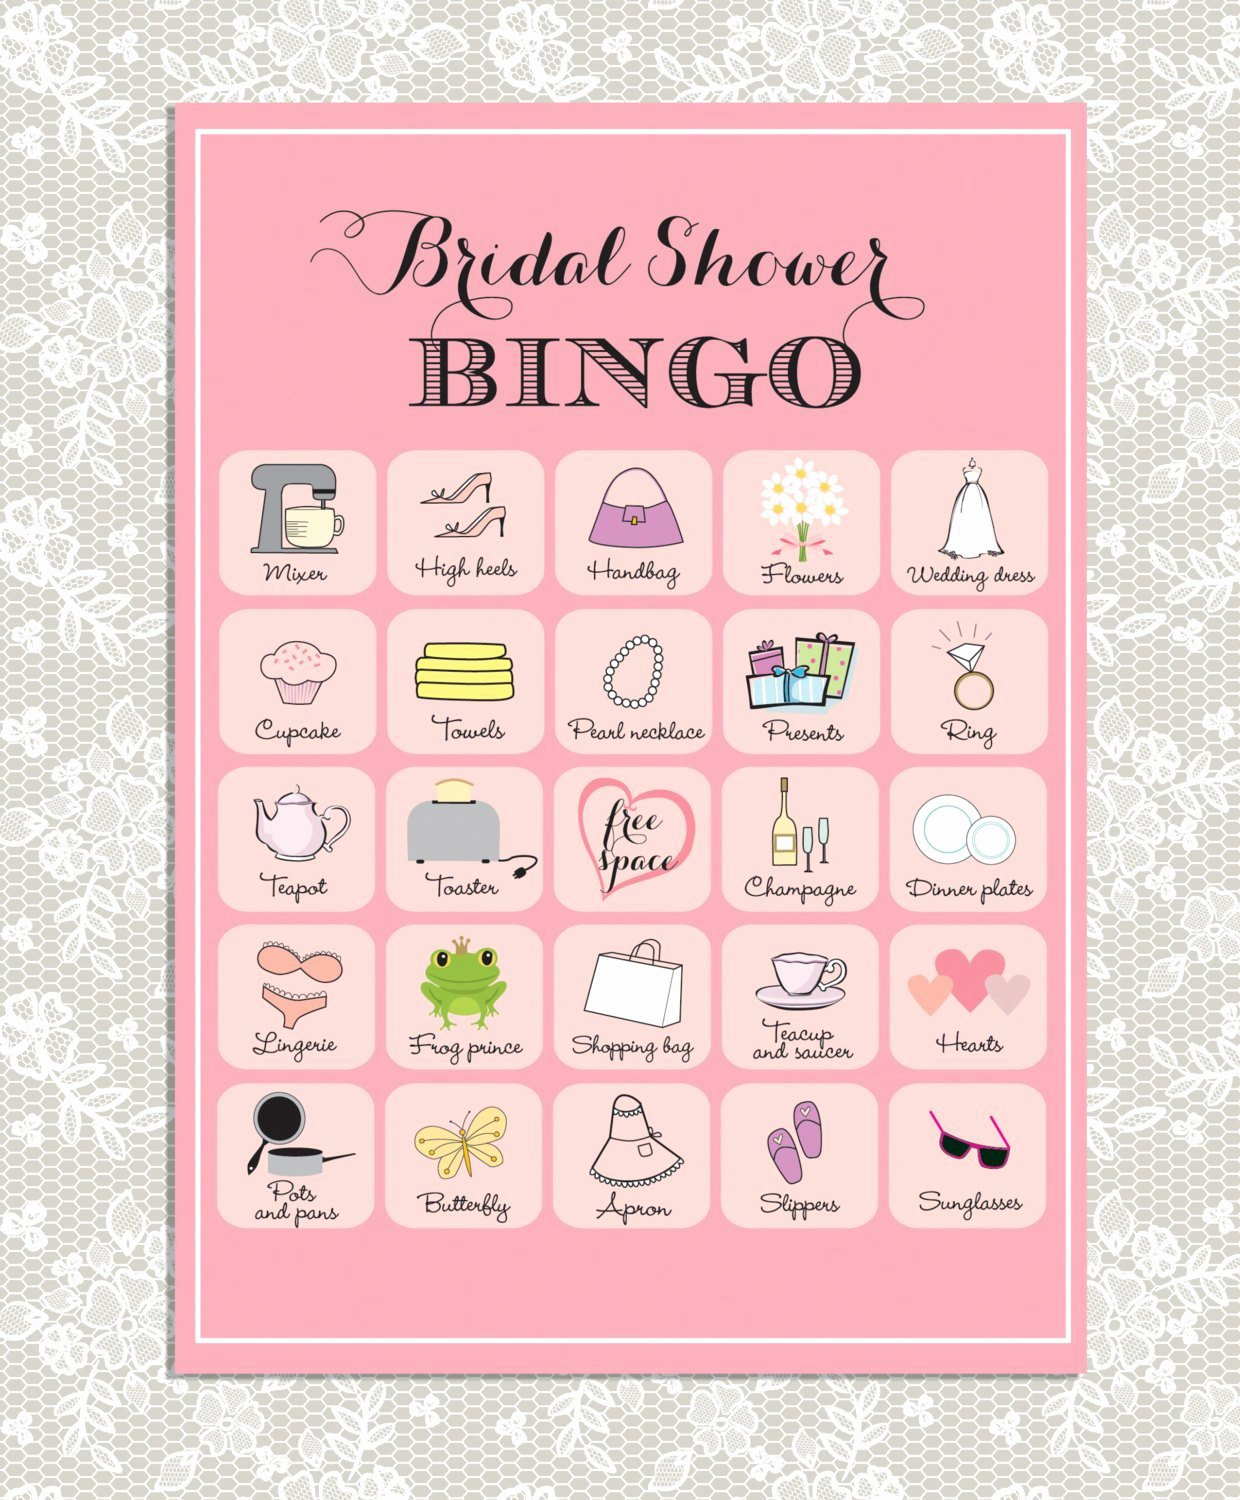 Bridal Shower Bingo Template Beautiful Printable Bridal Shower Bingo 40 Unique Game Cards In Pink